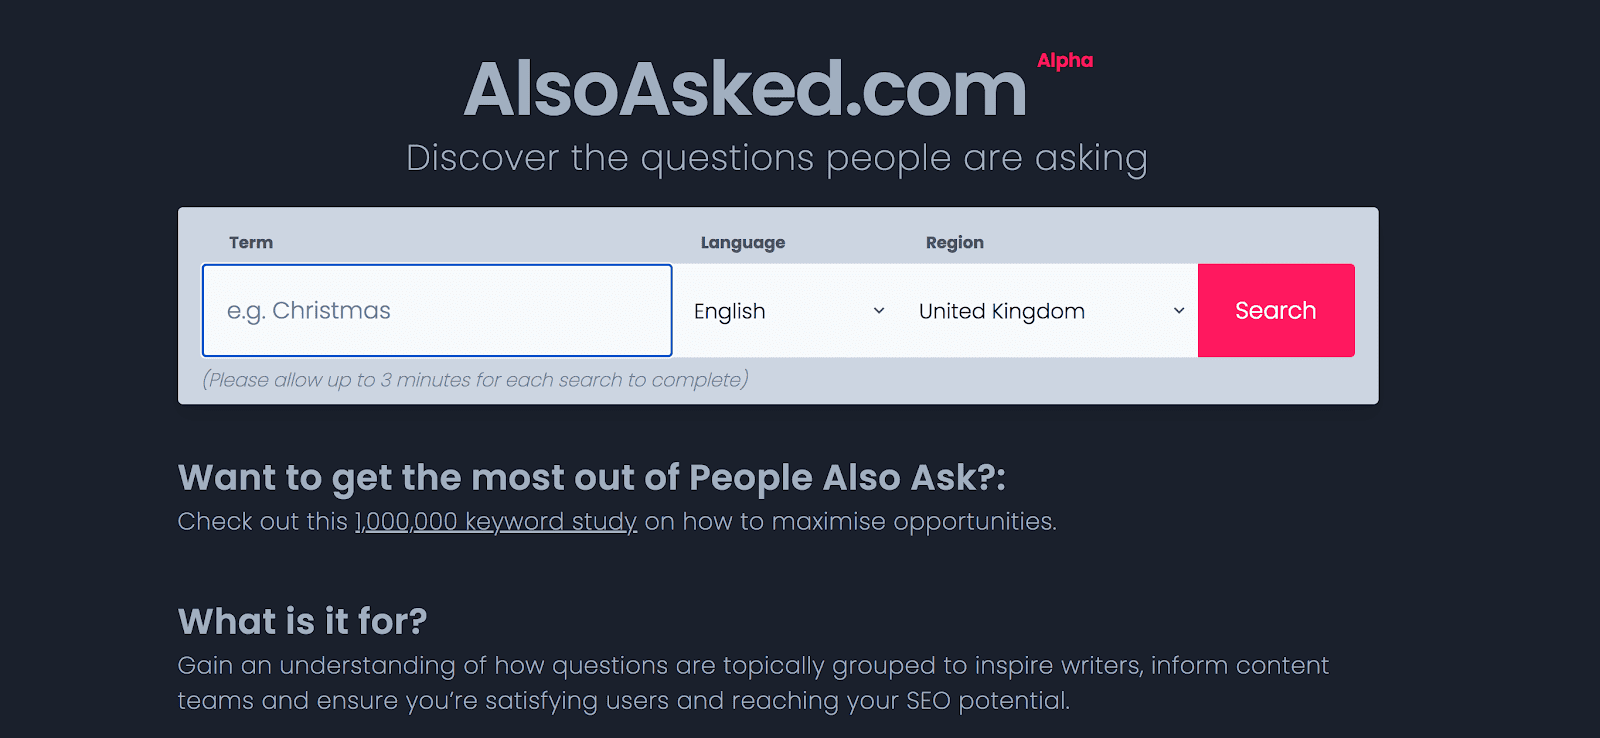 AlsoAsked home page